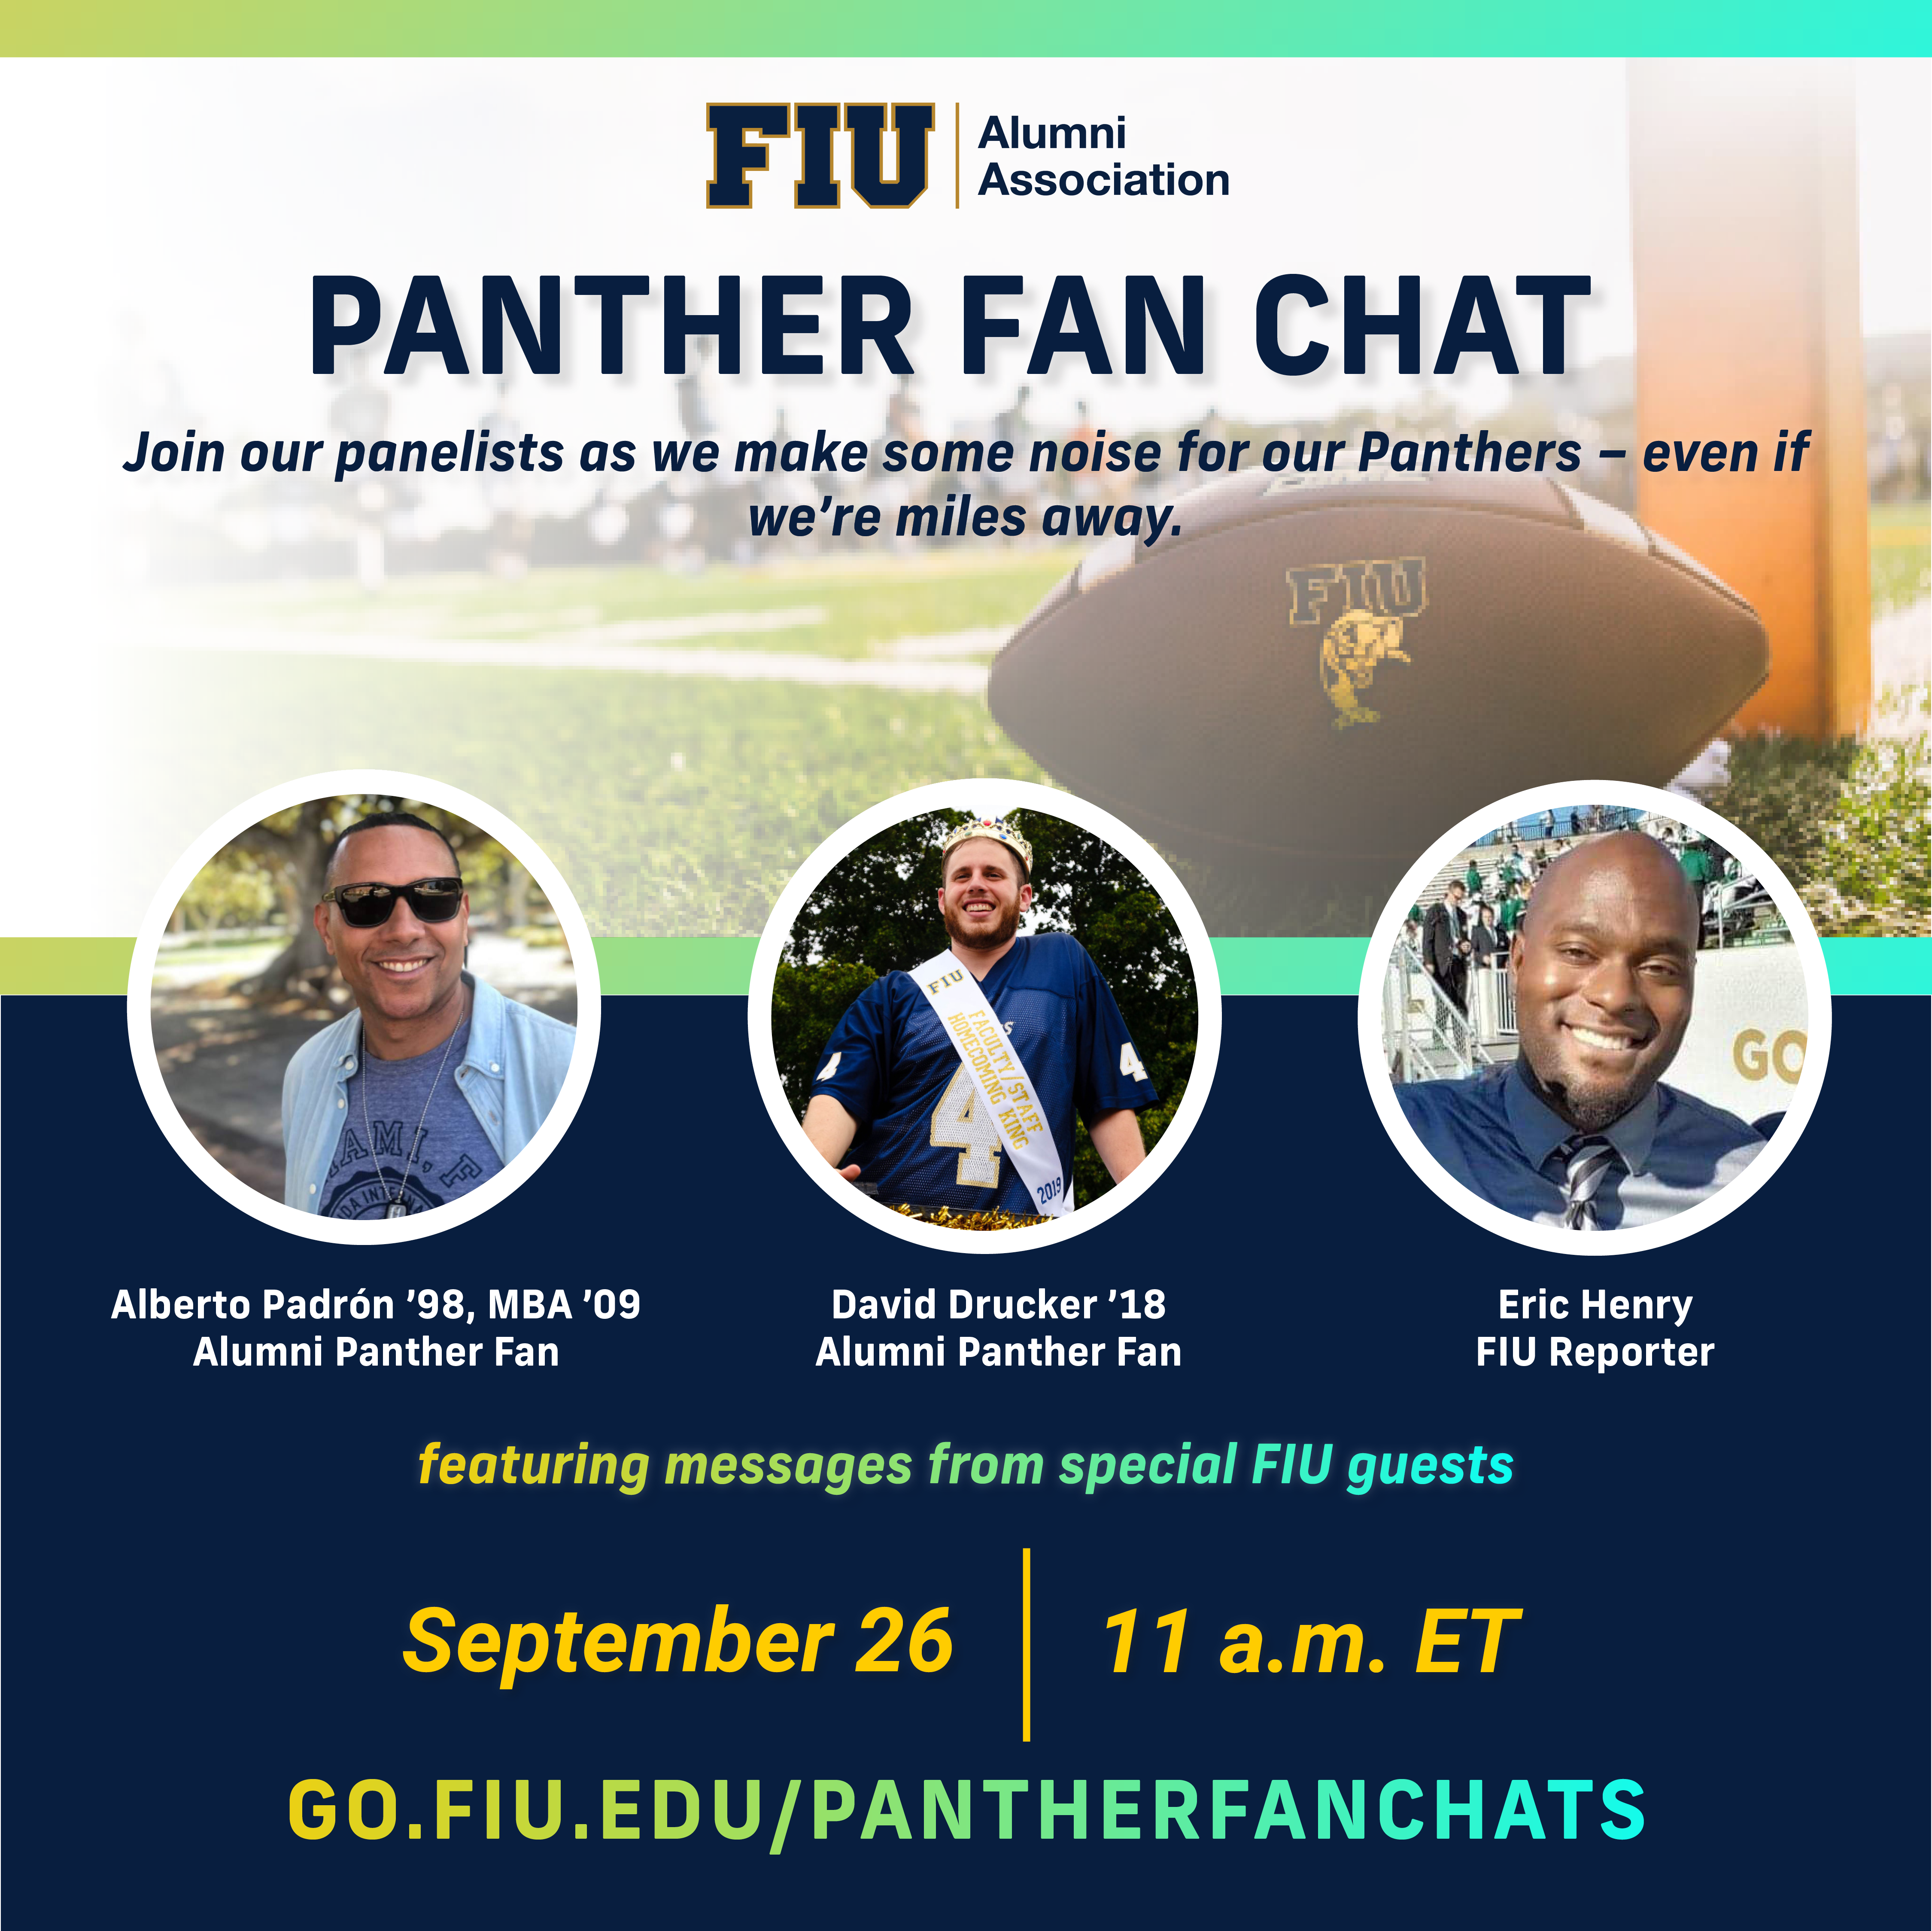 panther-fan-chat-liberty-vs.-fiu-square-updated.png